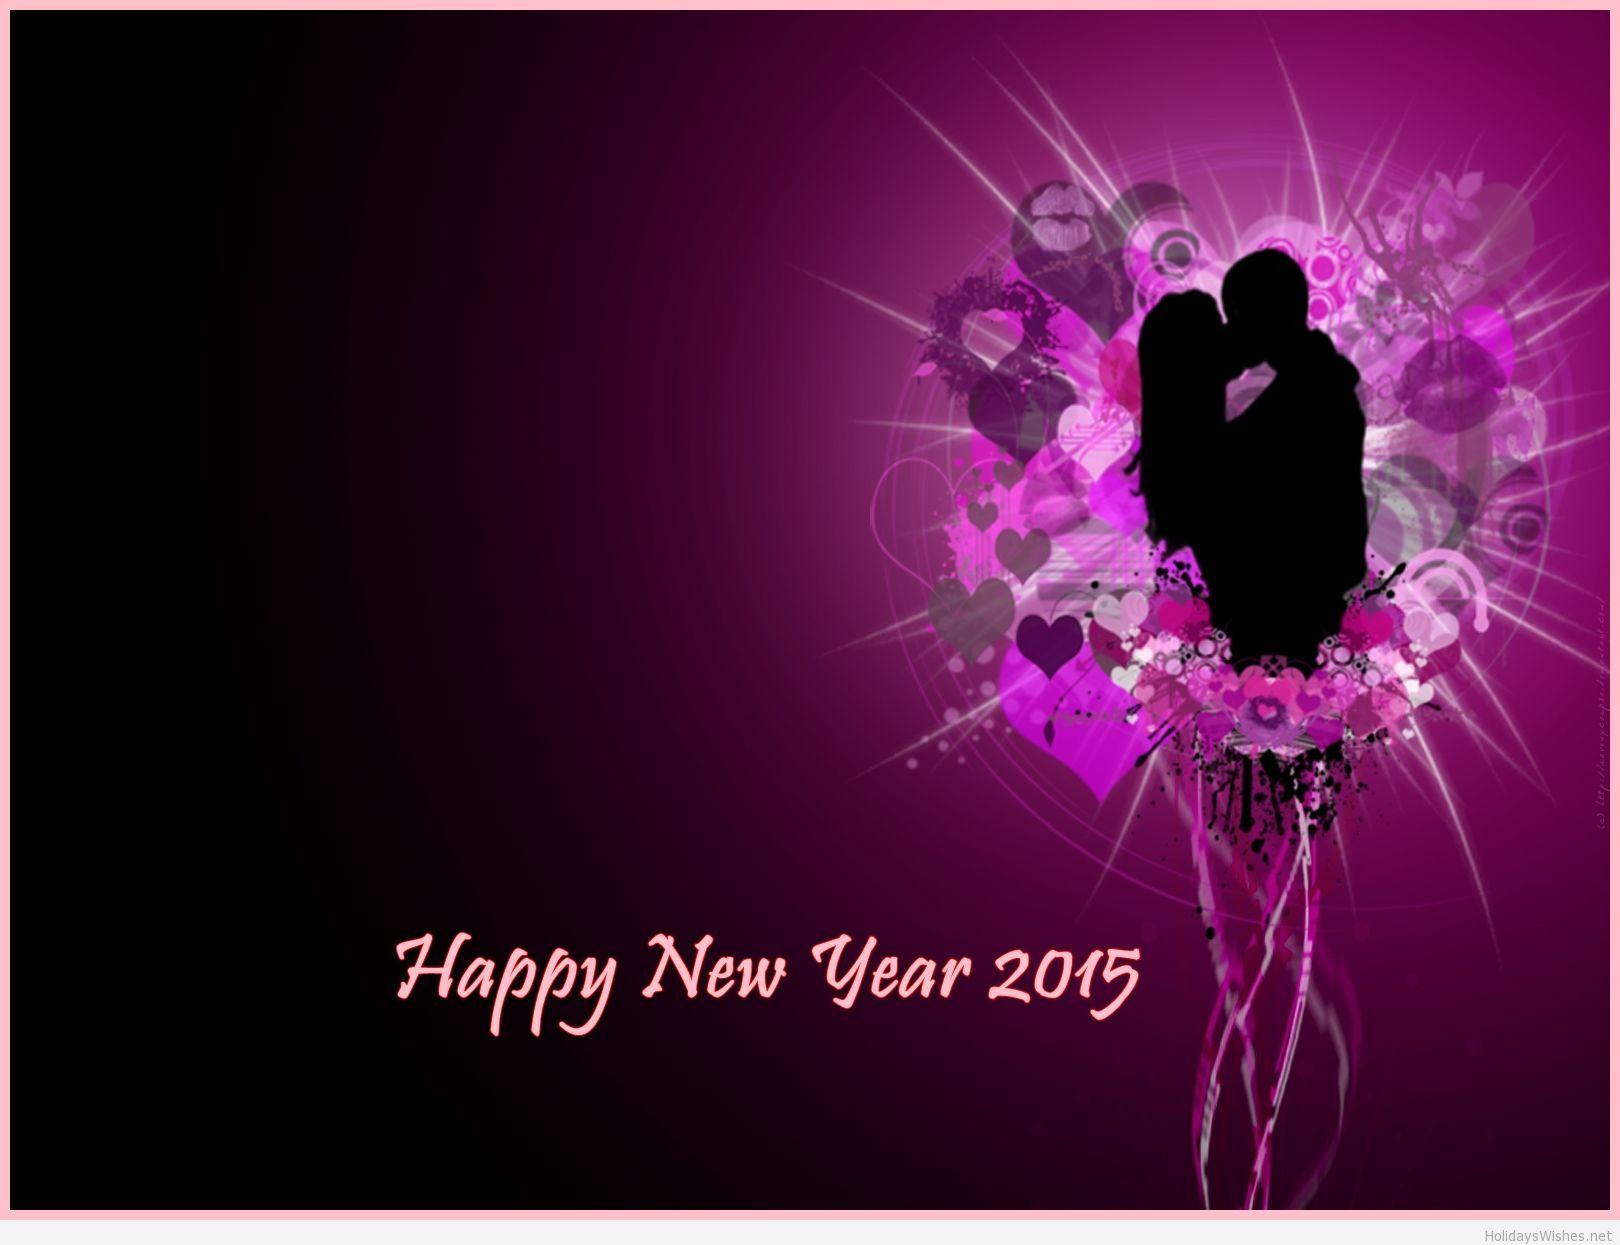 Love Kiss Wallpapers 2015 - Wallpaper cave